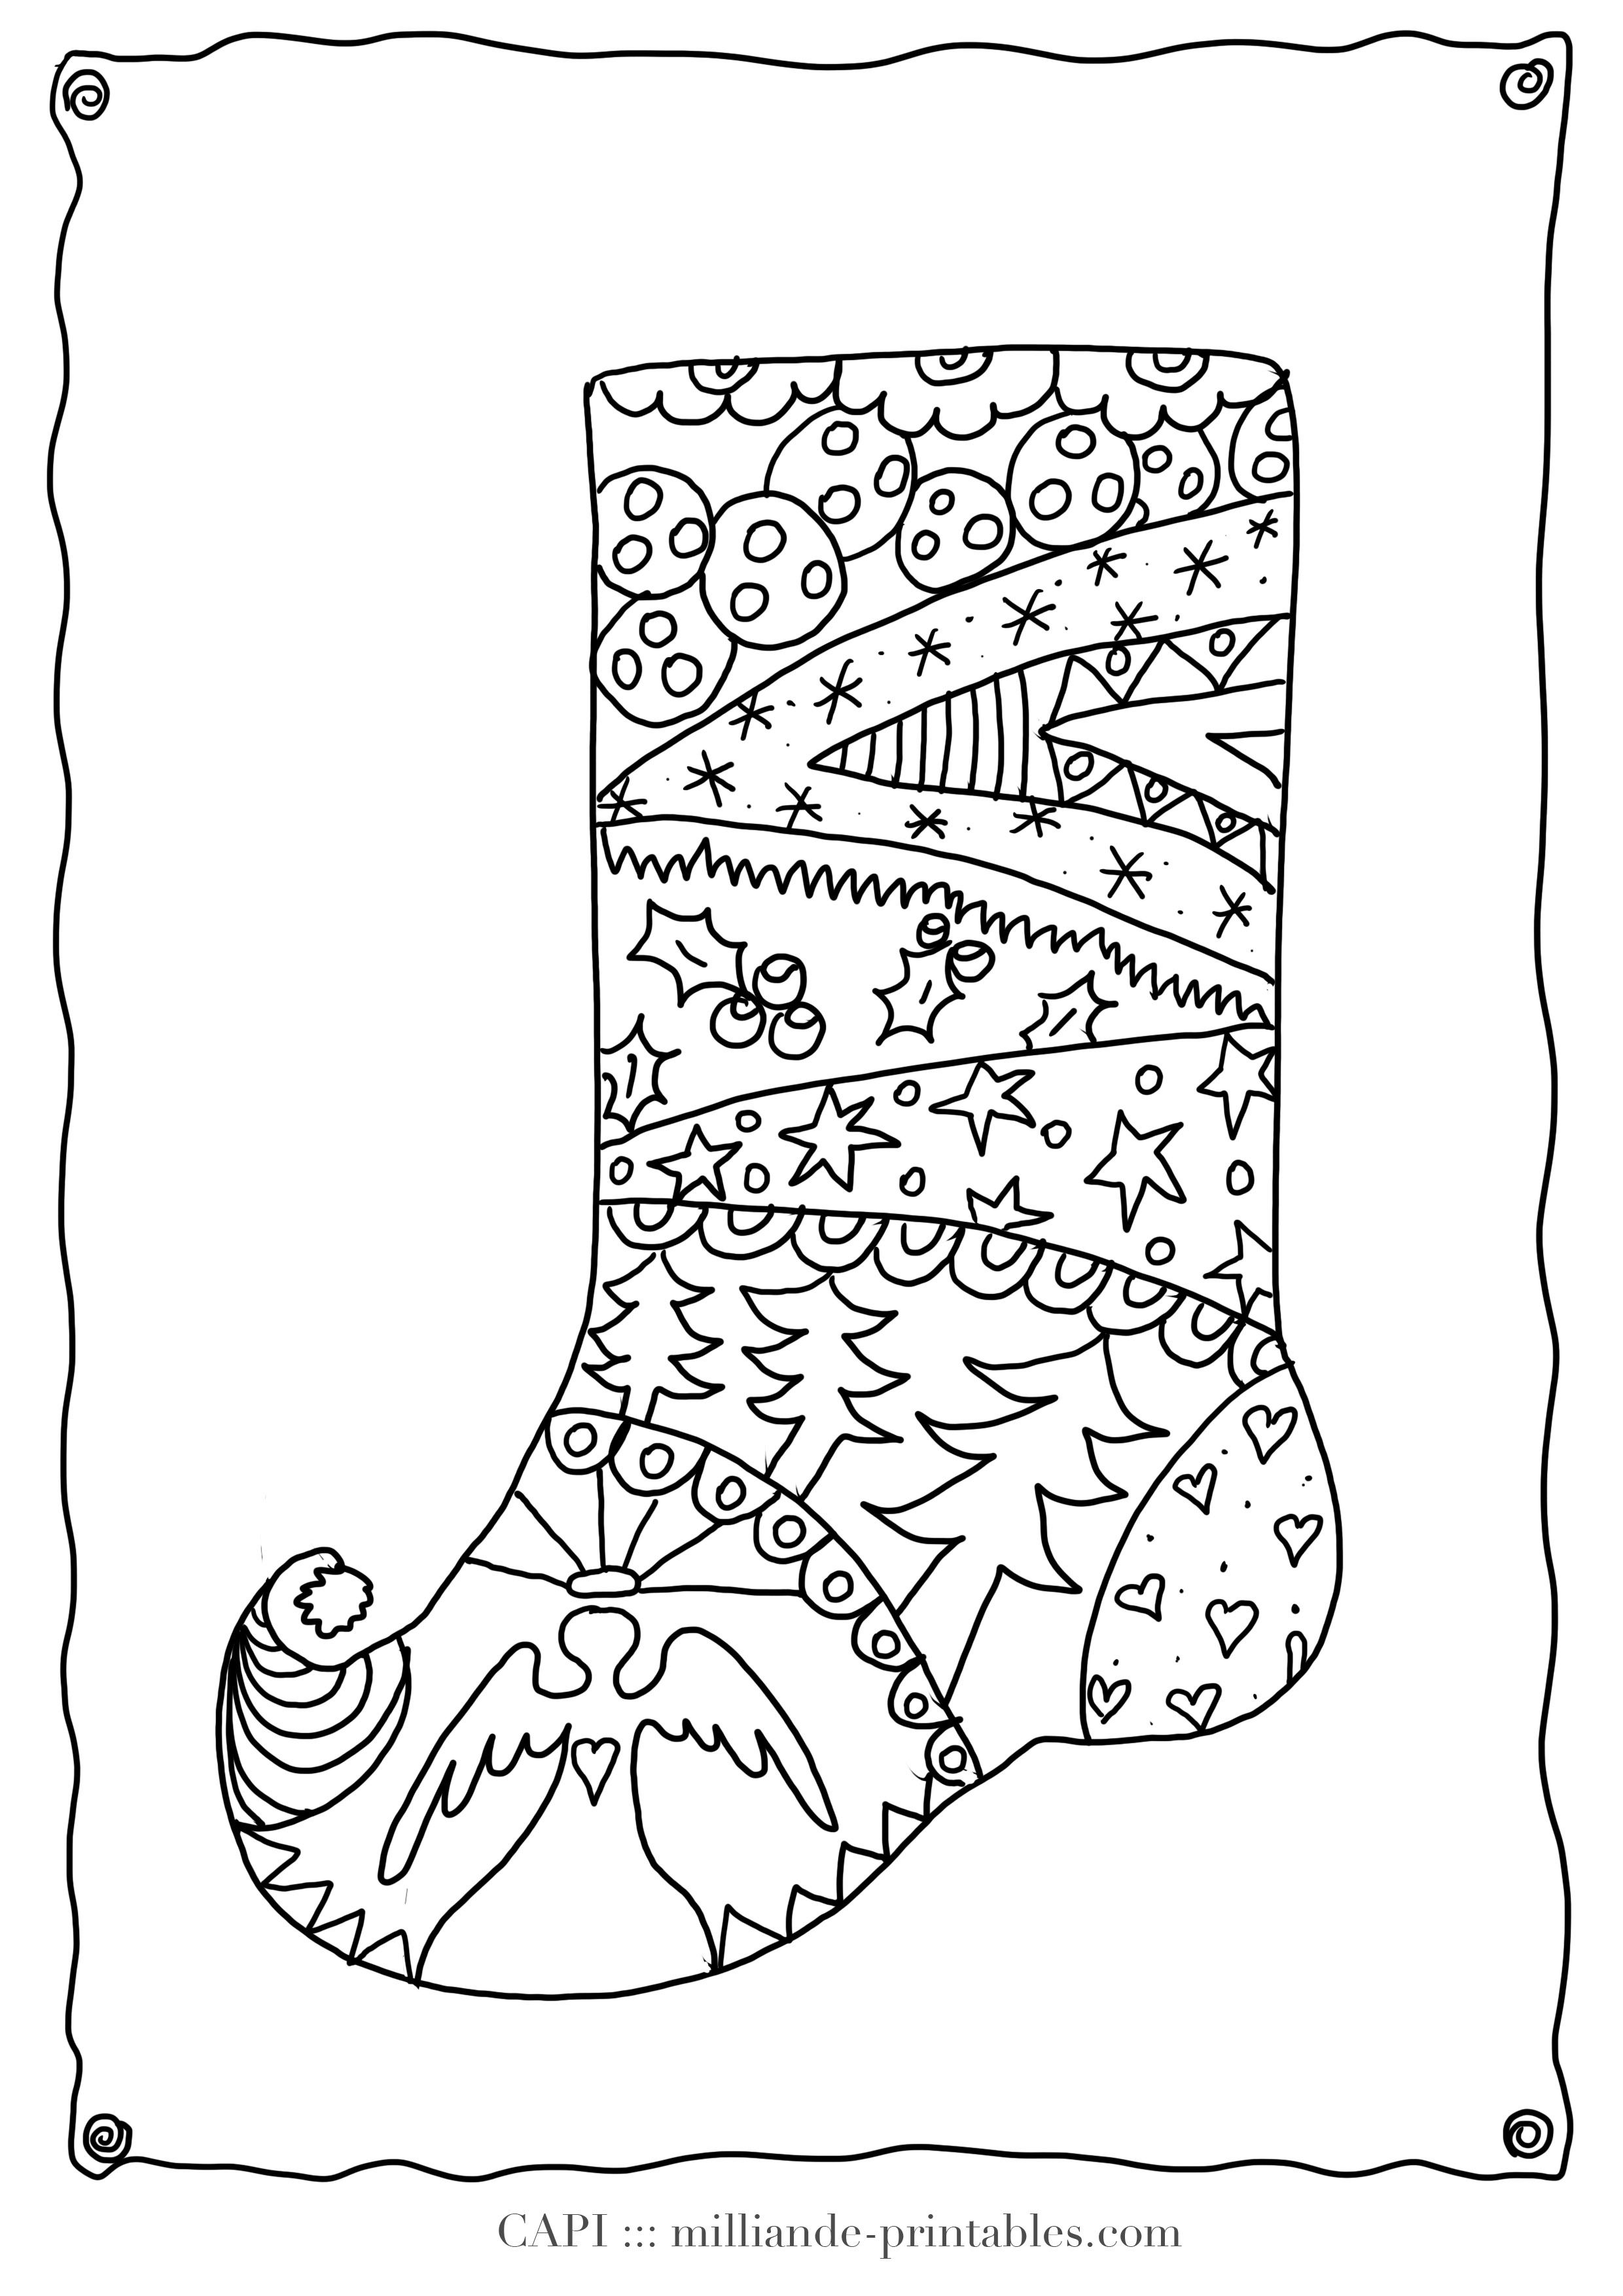 Christmas Colouring Pages To Print With Detailed Coloring Bing Images Design Pinterest